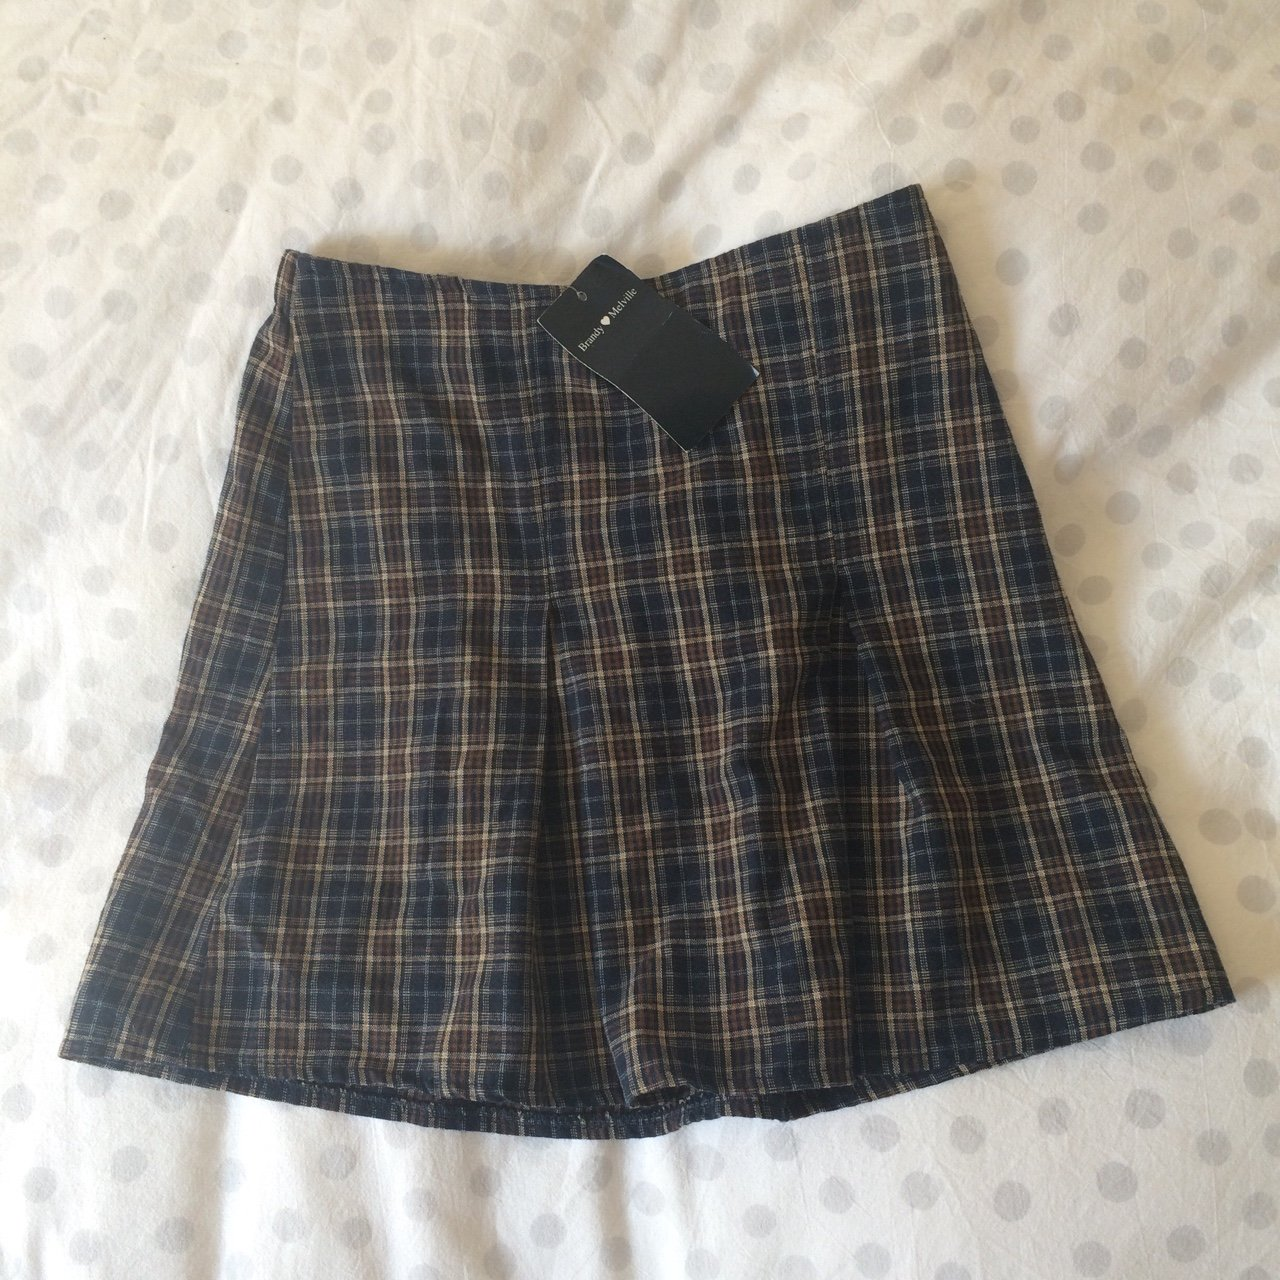 734f3532a3 Brandy Melville A-line skirt with pleats. Small gingham and - Depop